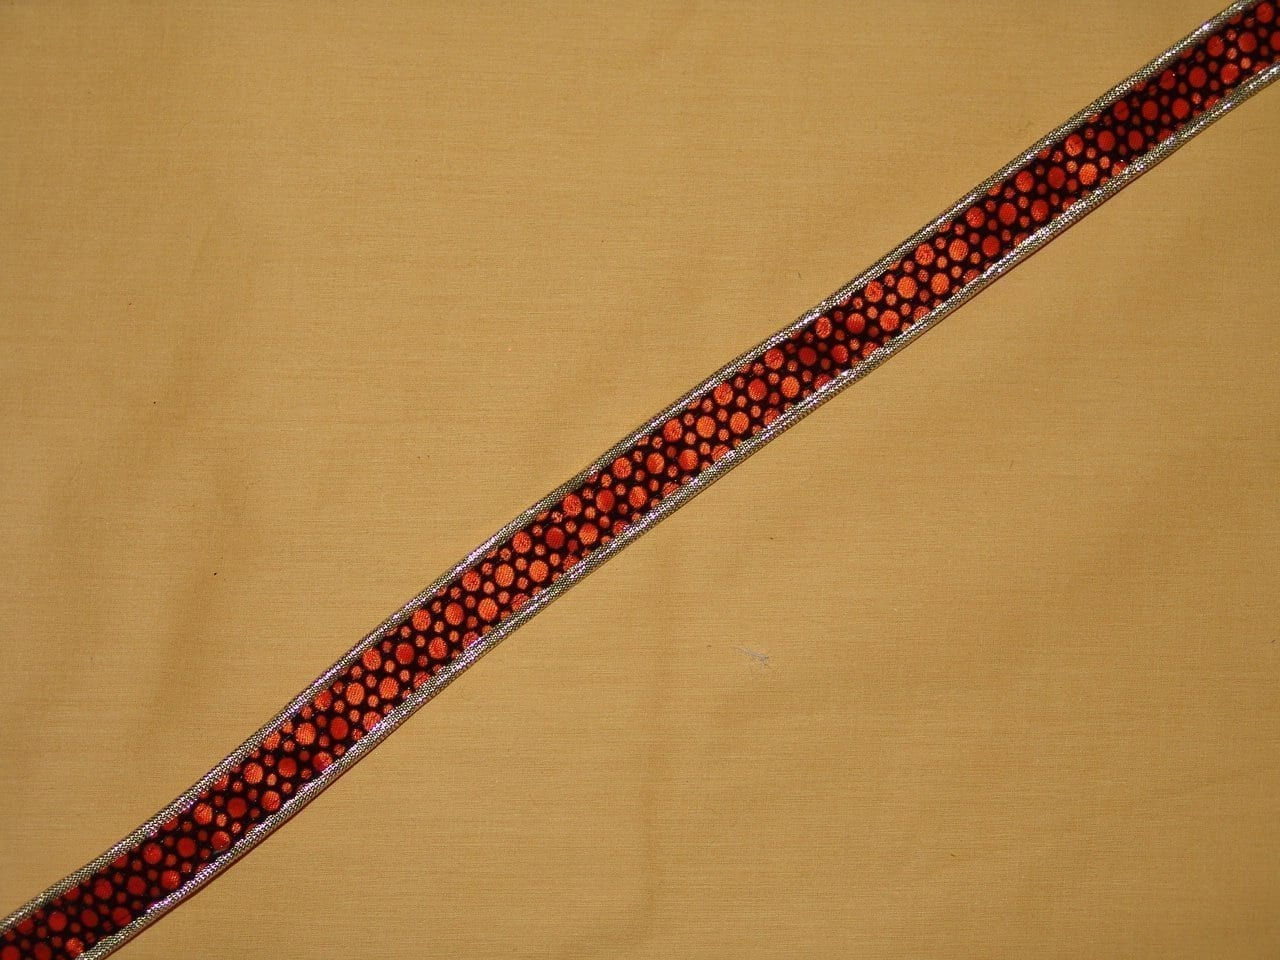 Velvet Print Gota Lace LC031 width 0.75 inch Roll of 9 mtrs. 1